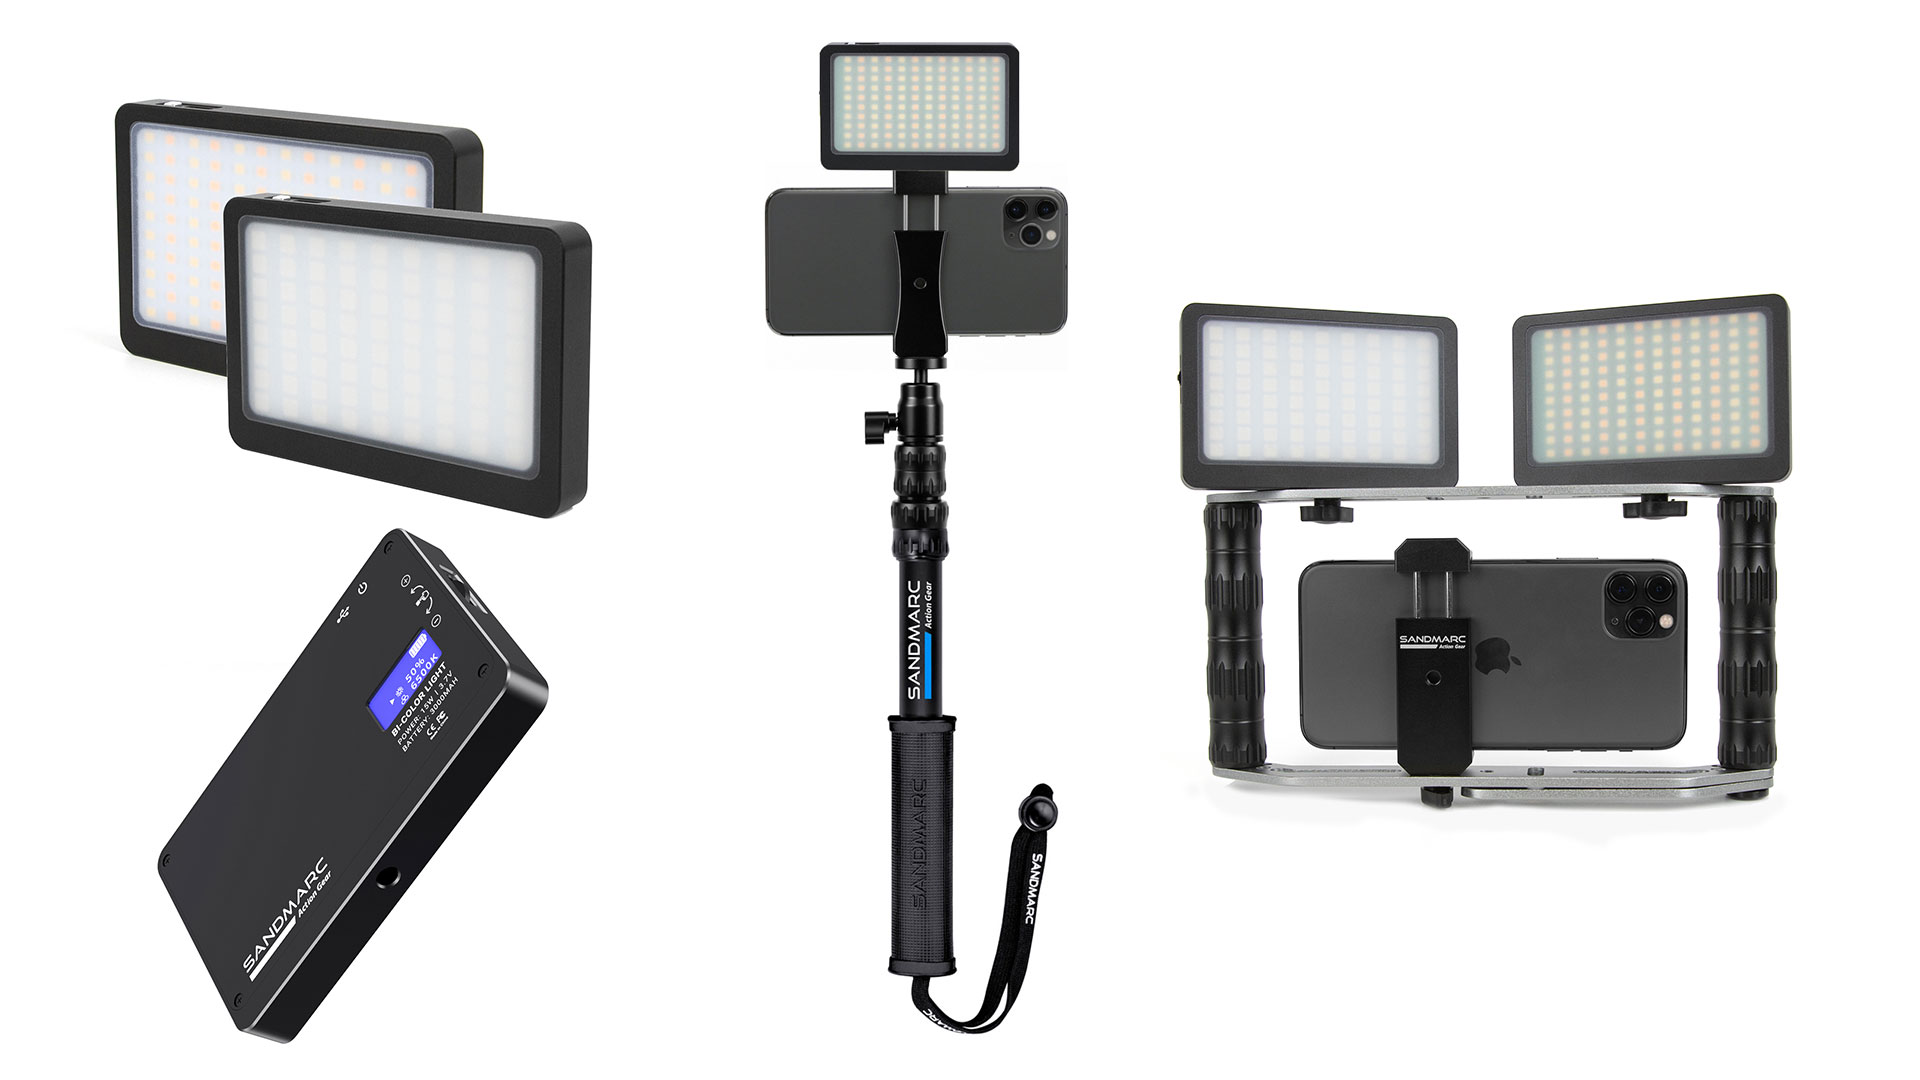 Nuevas luces LED Prolight RGB y Prolight Bi-color de SANDMARC para cineastas de smartphone